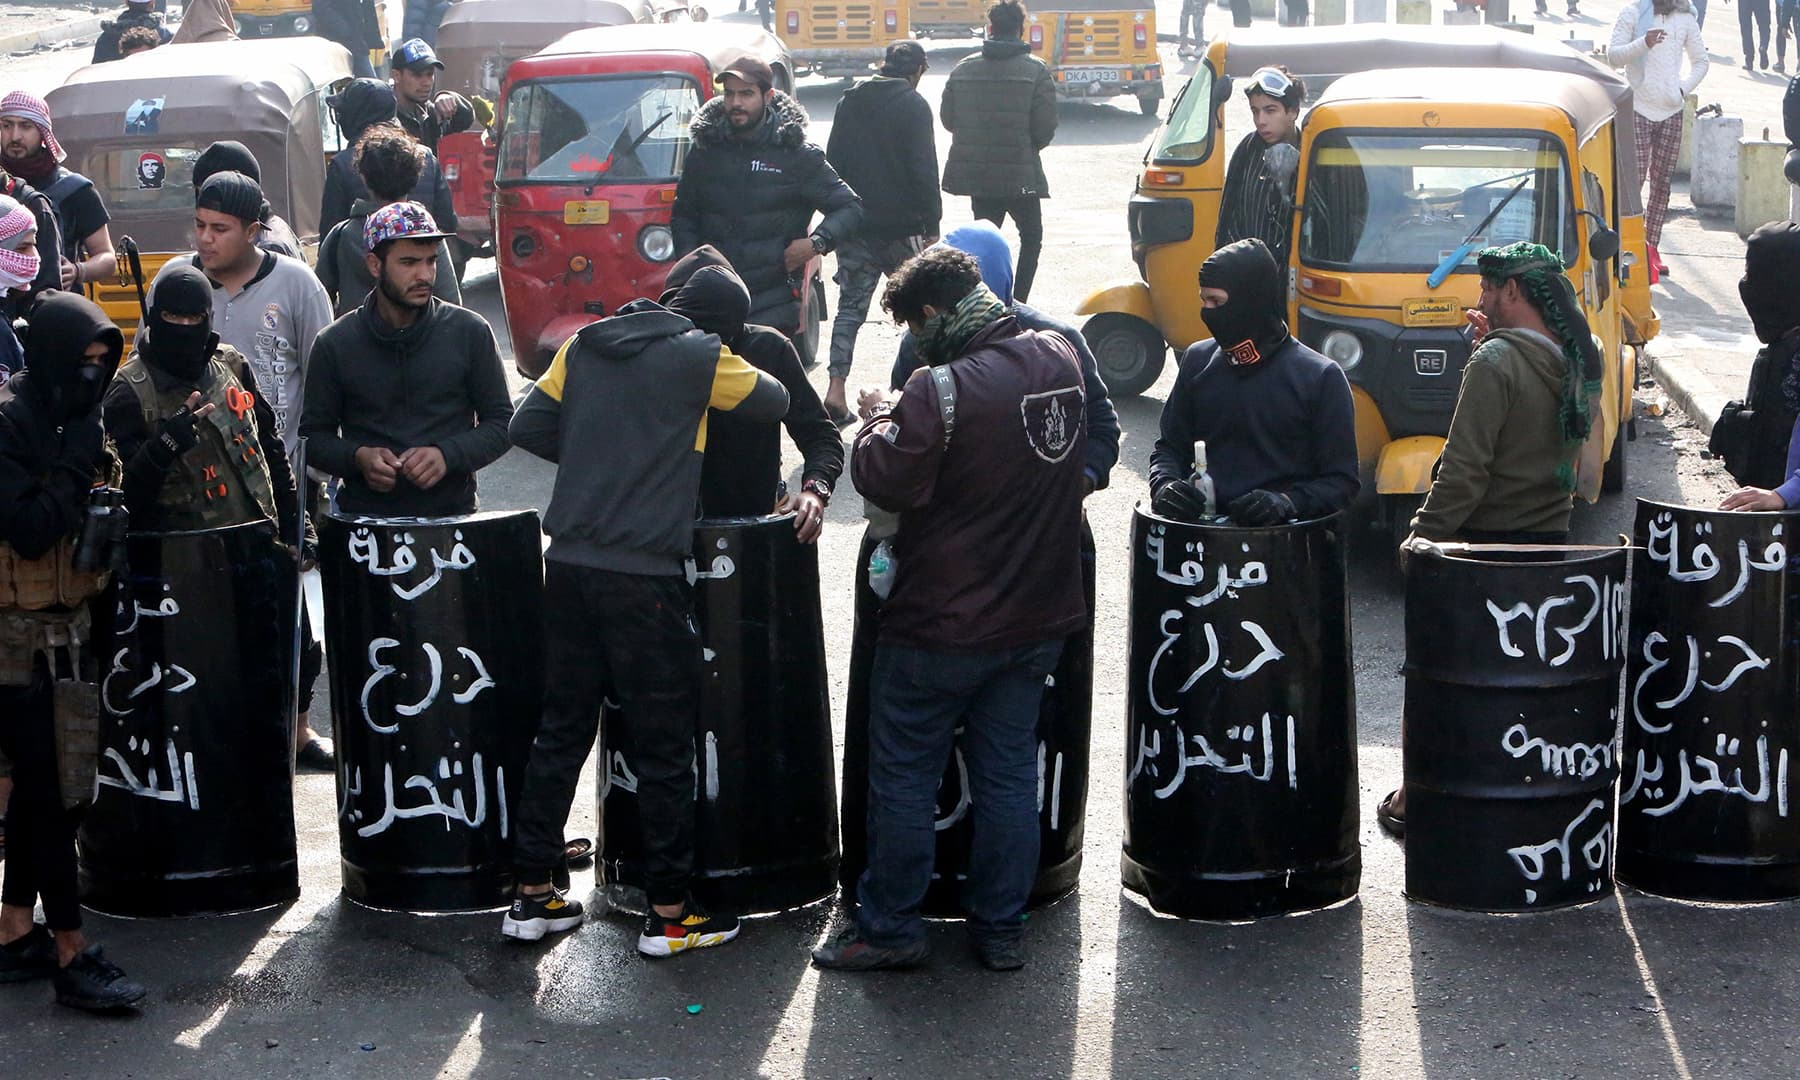 """Iraqi anti-government protesters carry black shields made out of metal drums, on which they had painted the words """"Tahrir Shield Squad."""", as they gather at al-Sinek bridge in the capital Baghdad on Saturday. — AFP"""